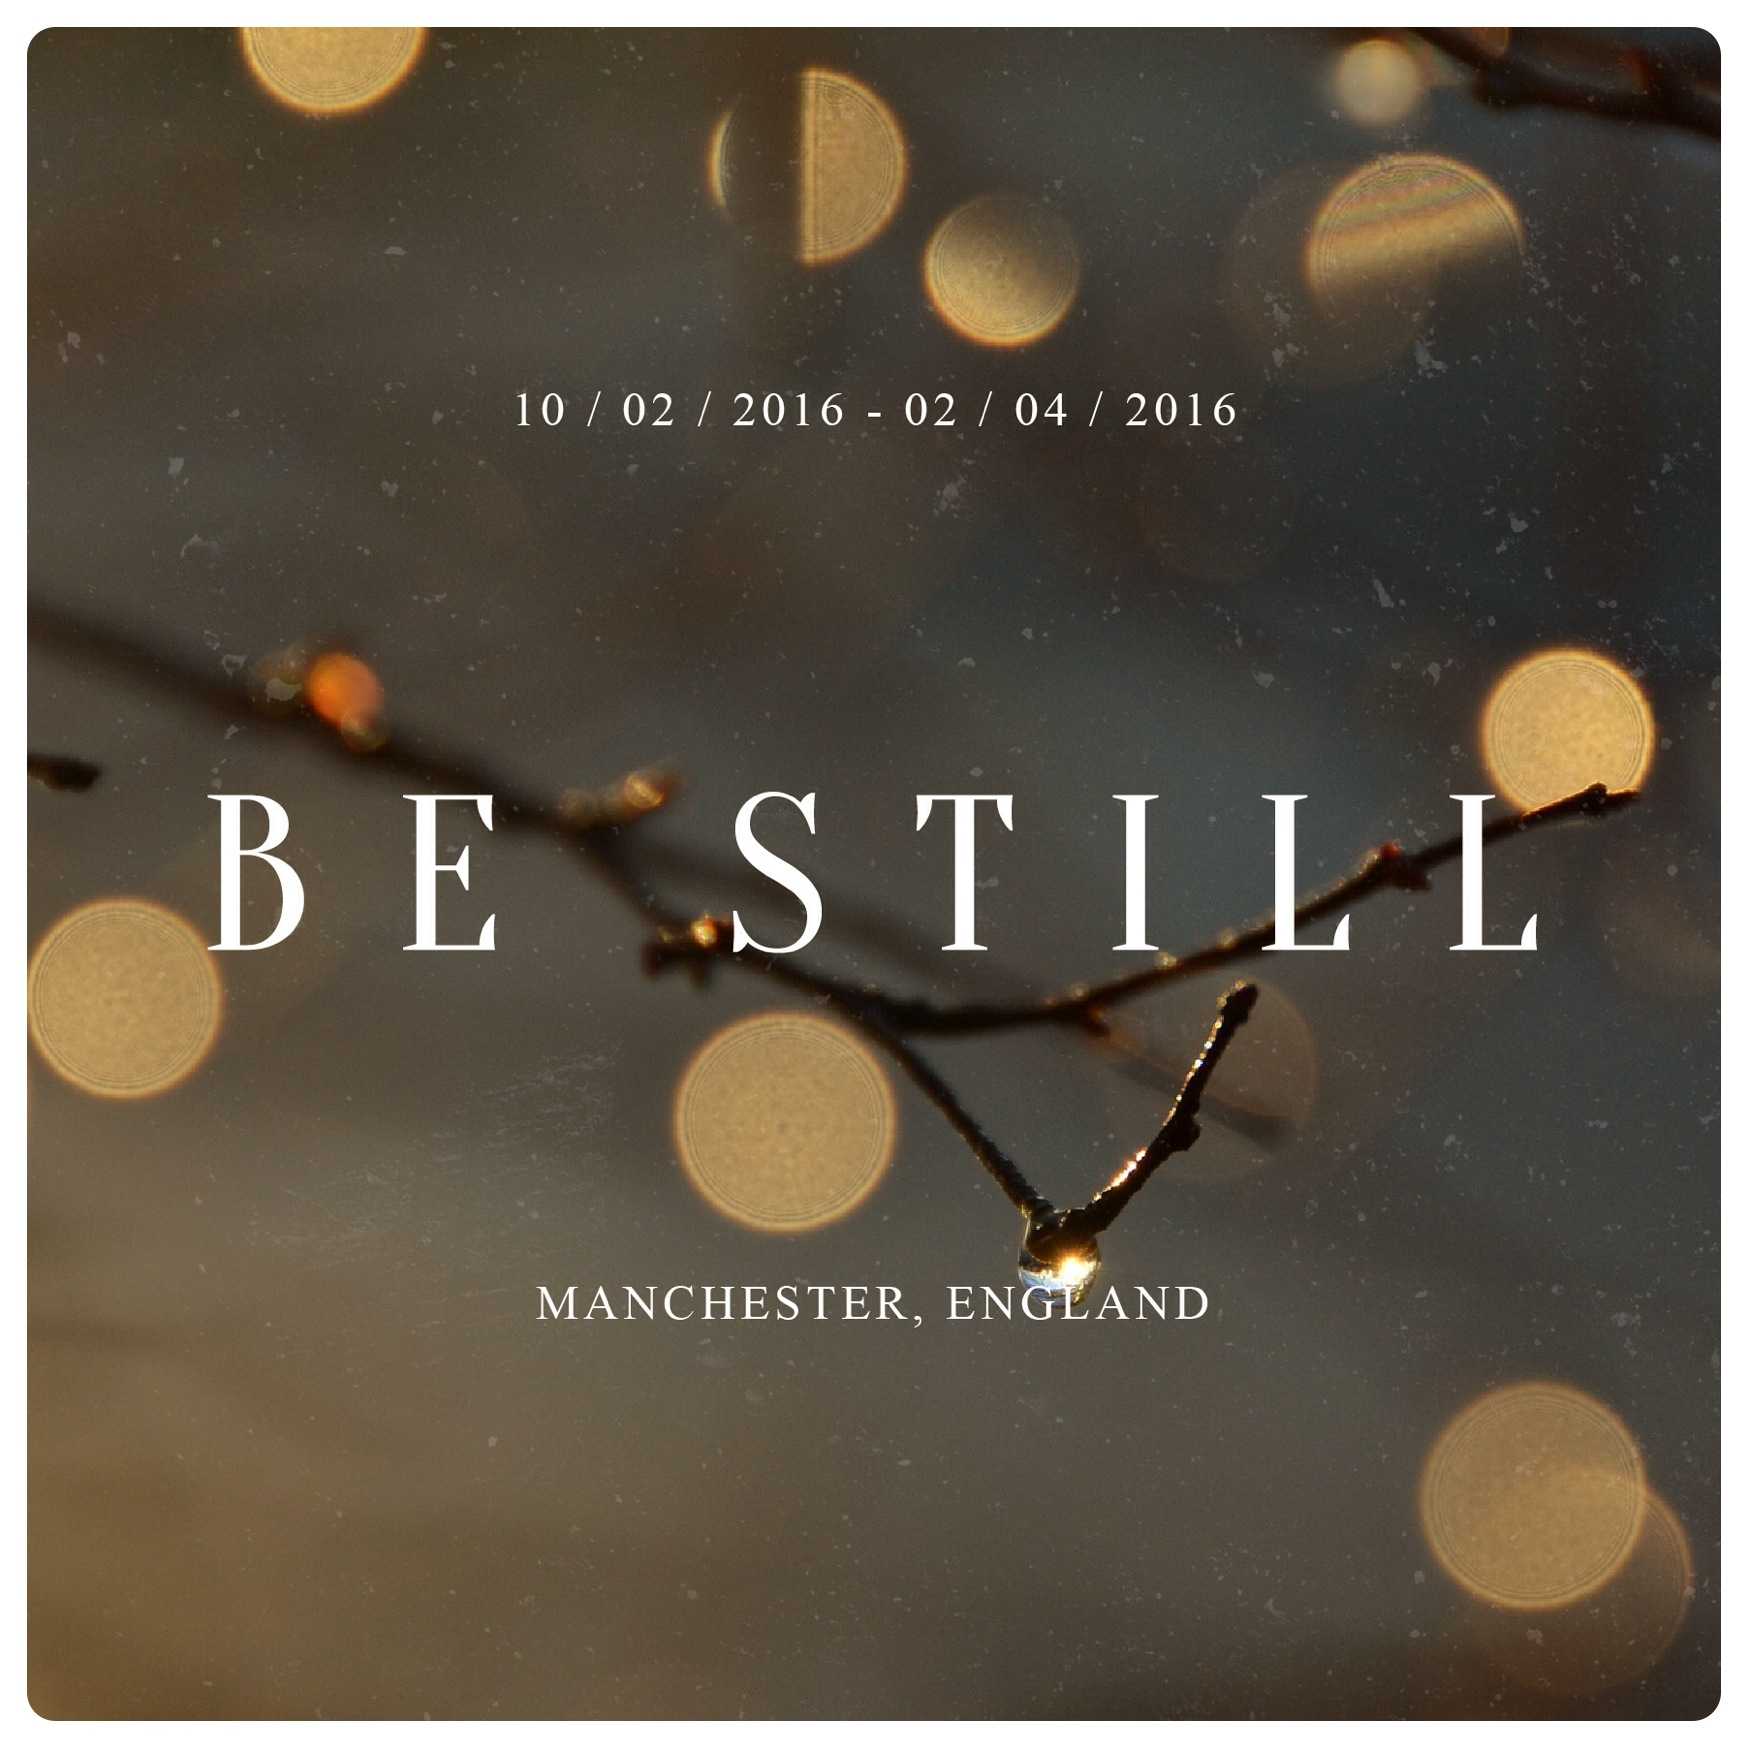 Coming soon BE STILL #BeStillMcr